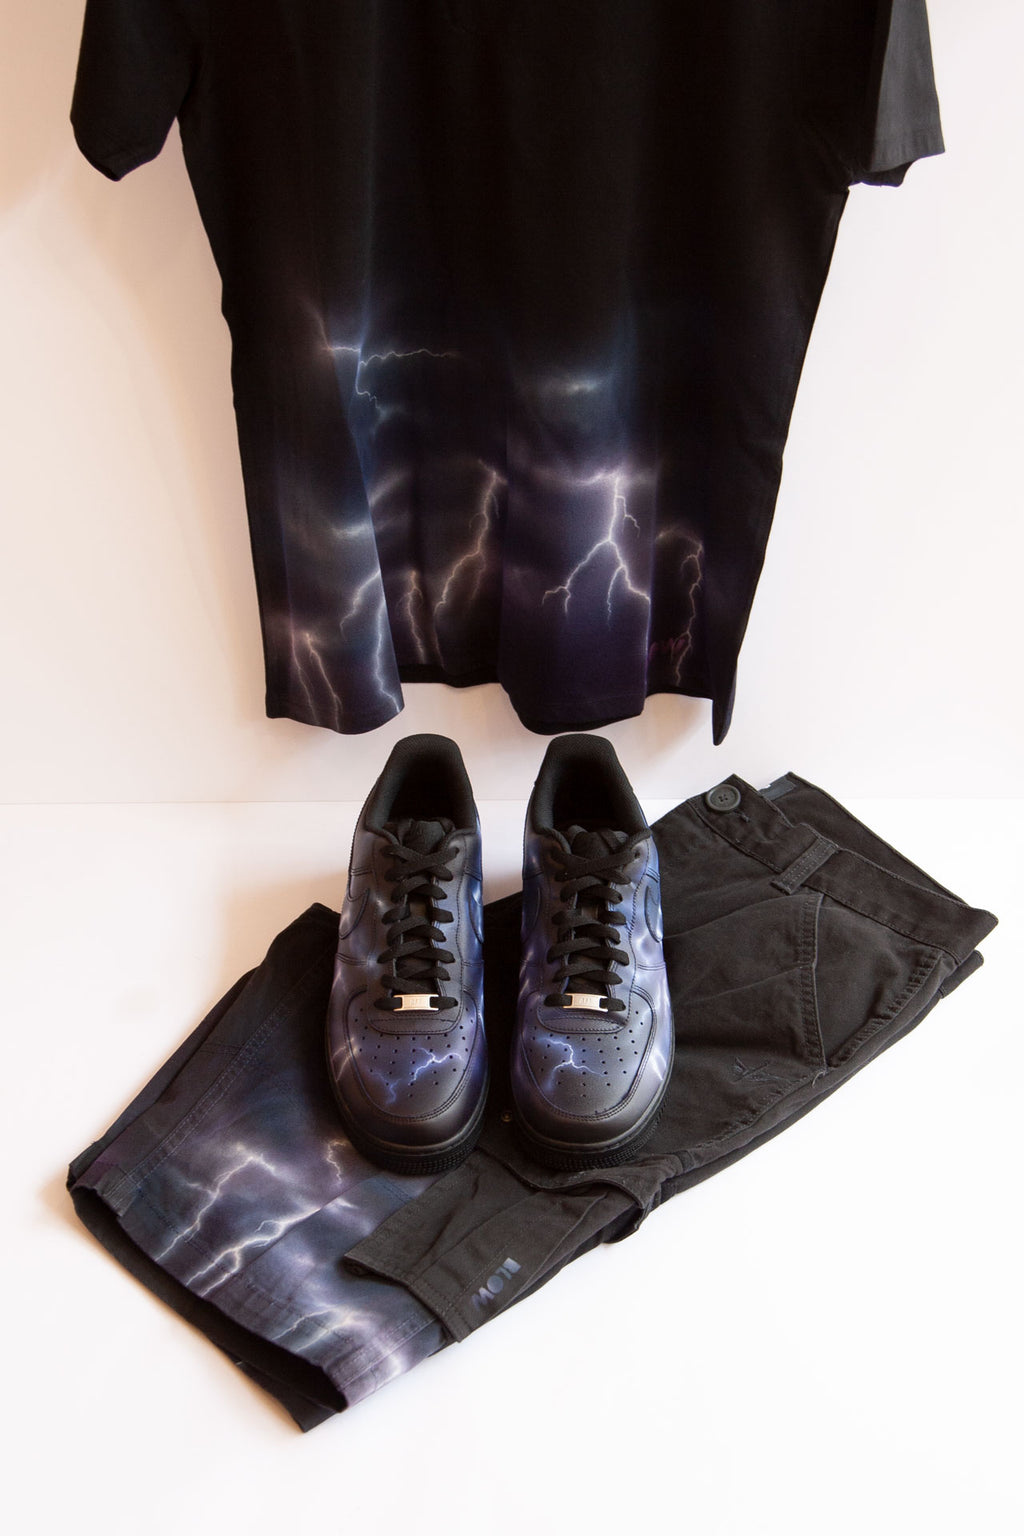 LIGHTNING STORM SET - T-Shirt, Shorts and Nike Air Force Ones